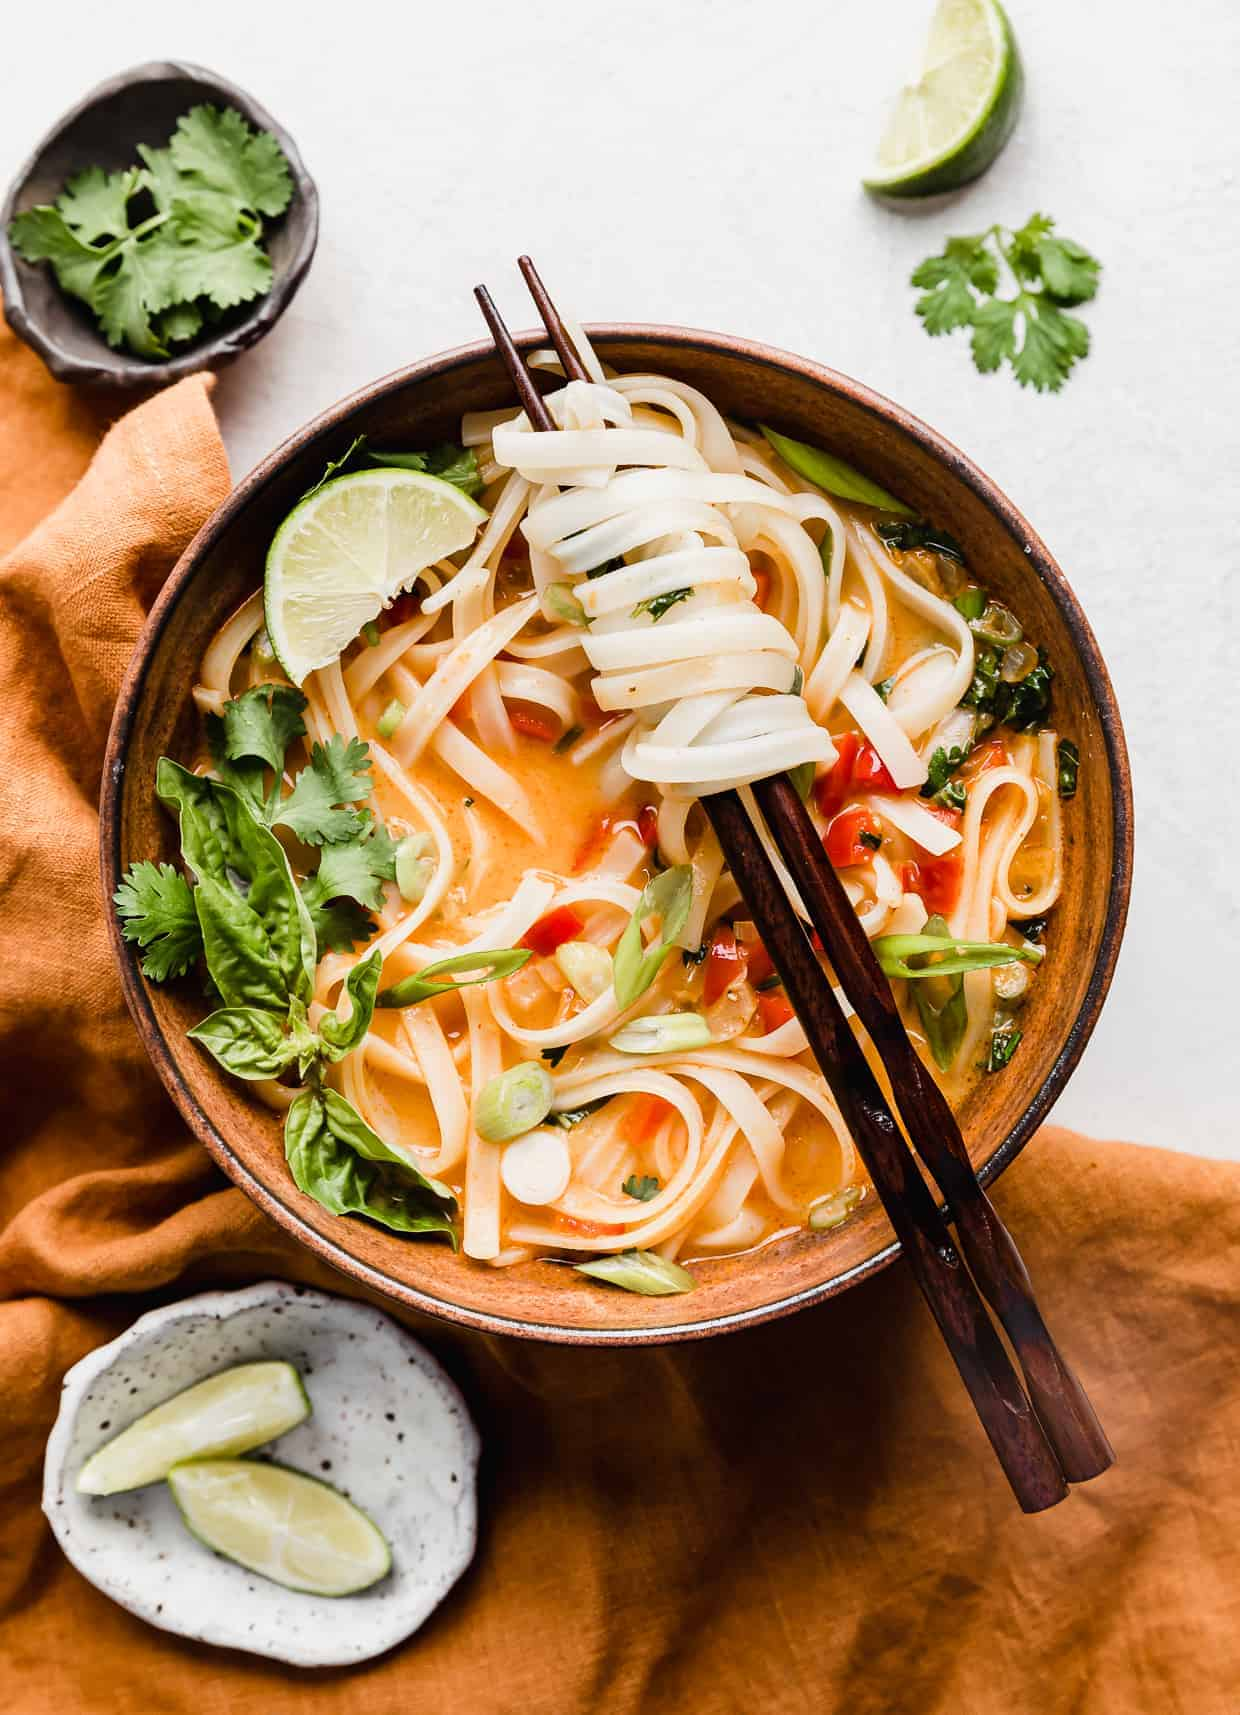 Thai Red Curry Noodle Soup in a brown bowl with chopsticks having rice noodles intertwined on the sticks.